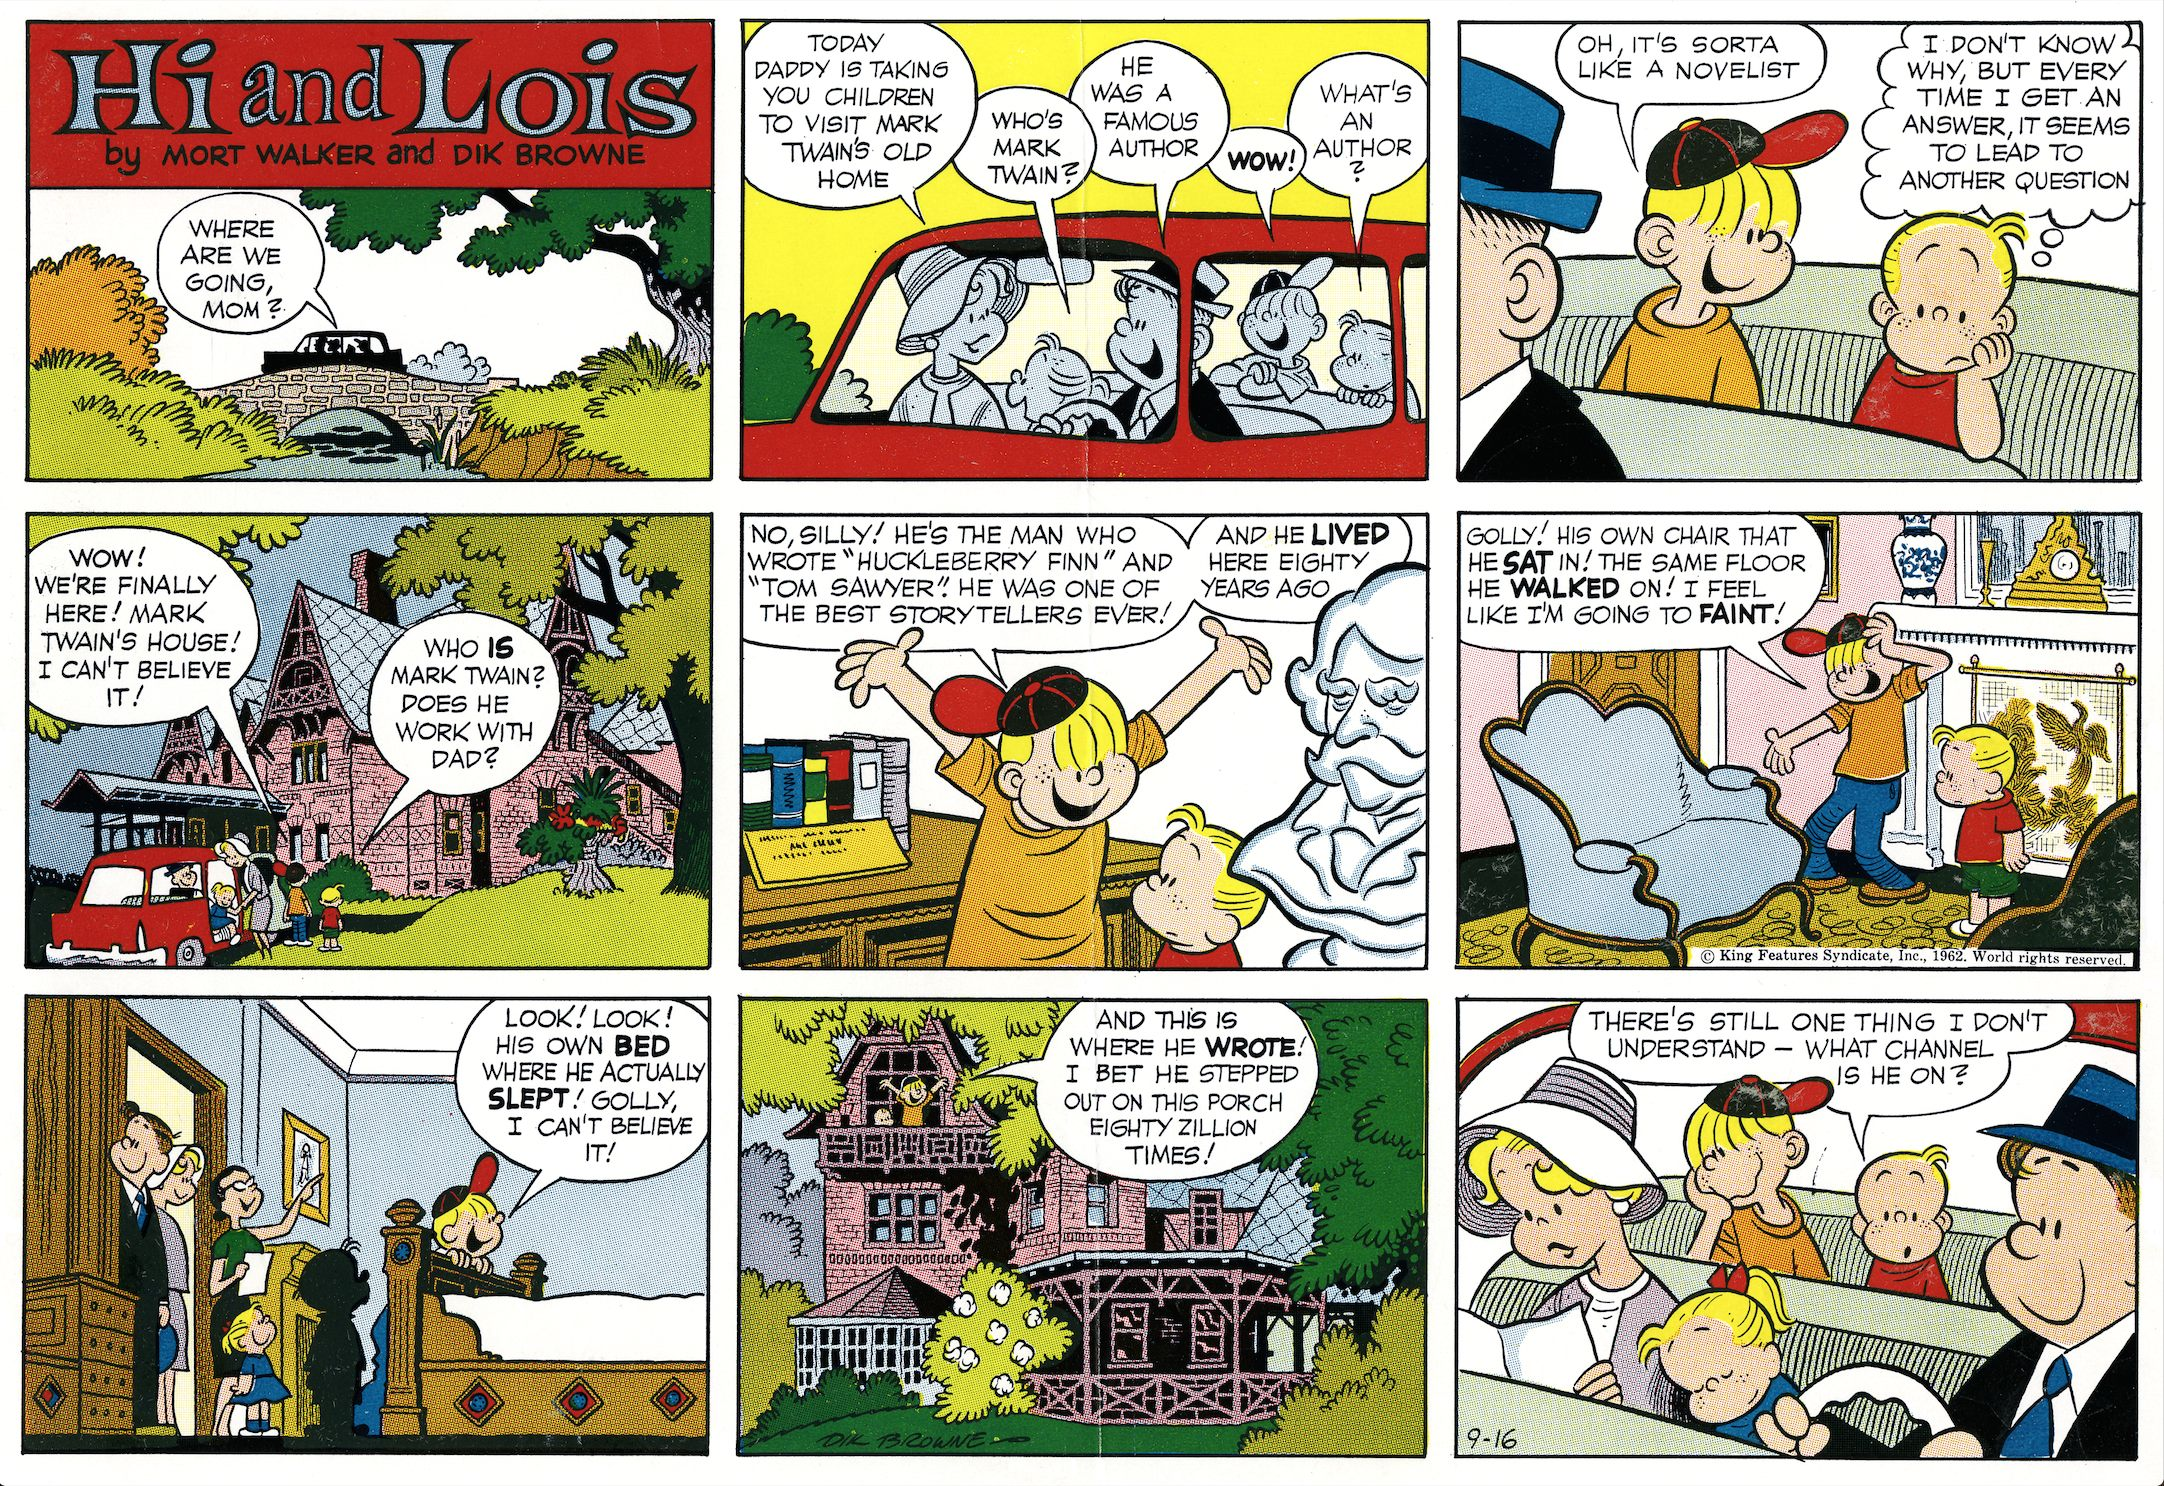 Hi and Lois Sunday page color proof, September 16, 1962.